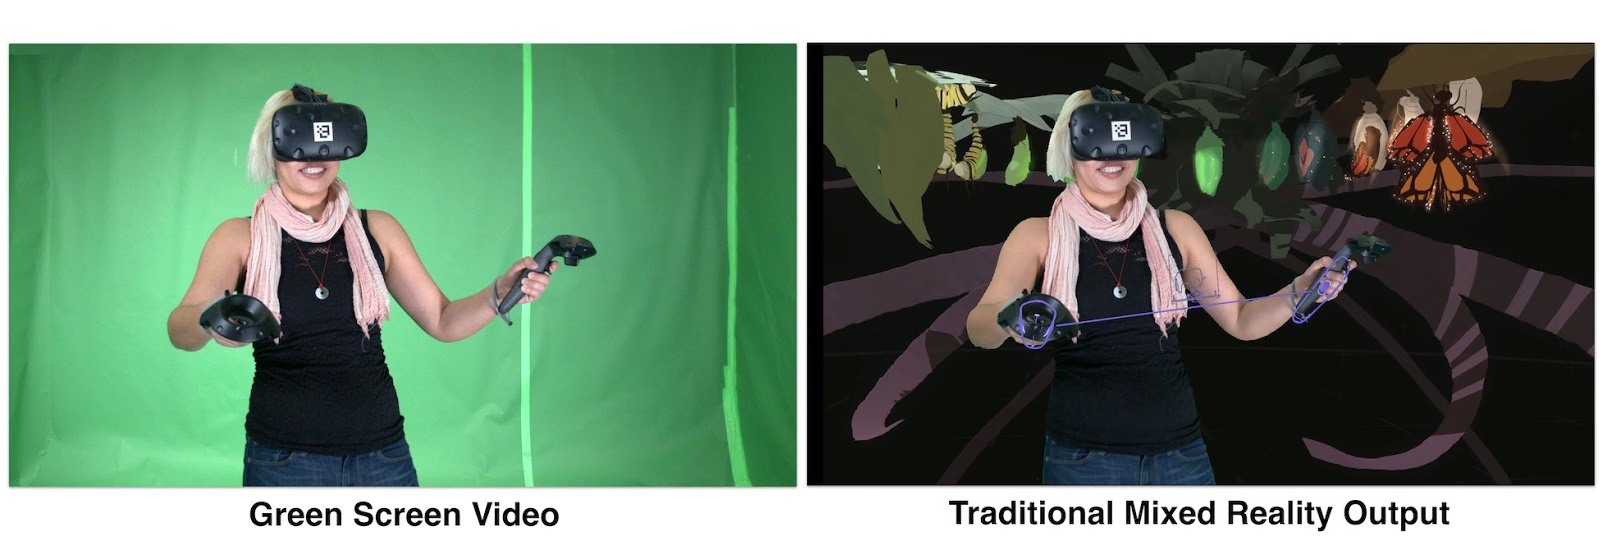 "This is an example of what a ""Mixed Reality"" shoot looks like. On the LEFT: This is what I look like during the shoot. I'm in a green screen room, I have a VR headset on. There is a 3rd-person camera recording me. On the RIGHT: there are apps that take the 3rd-person camera content + my VR content and outputs this view of me & my VR creation. (These photos are from the  Google Research blog  in the 'Headset Removal' experiment.)"